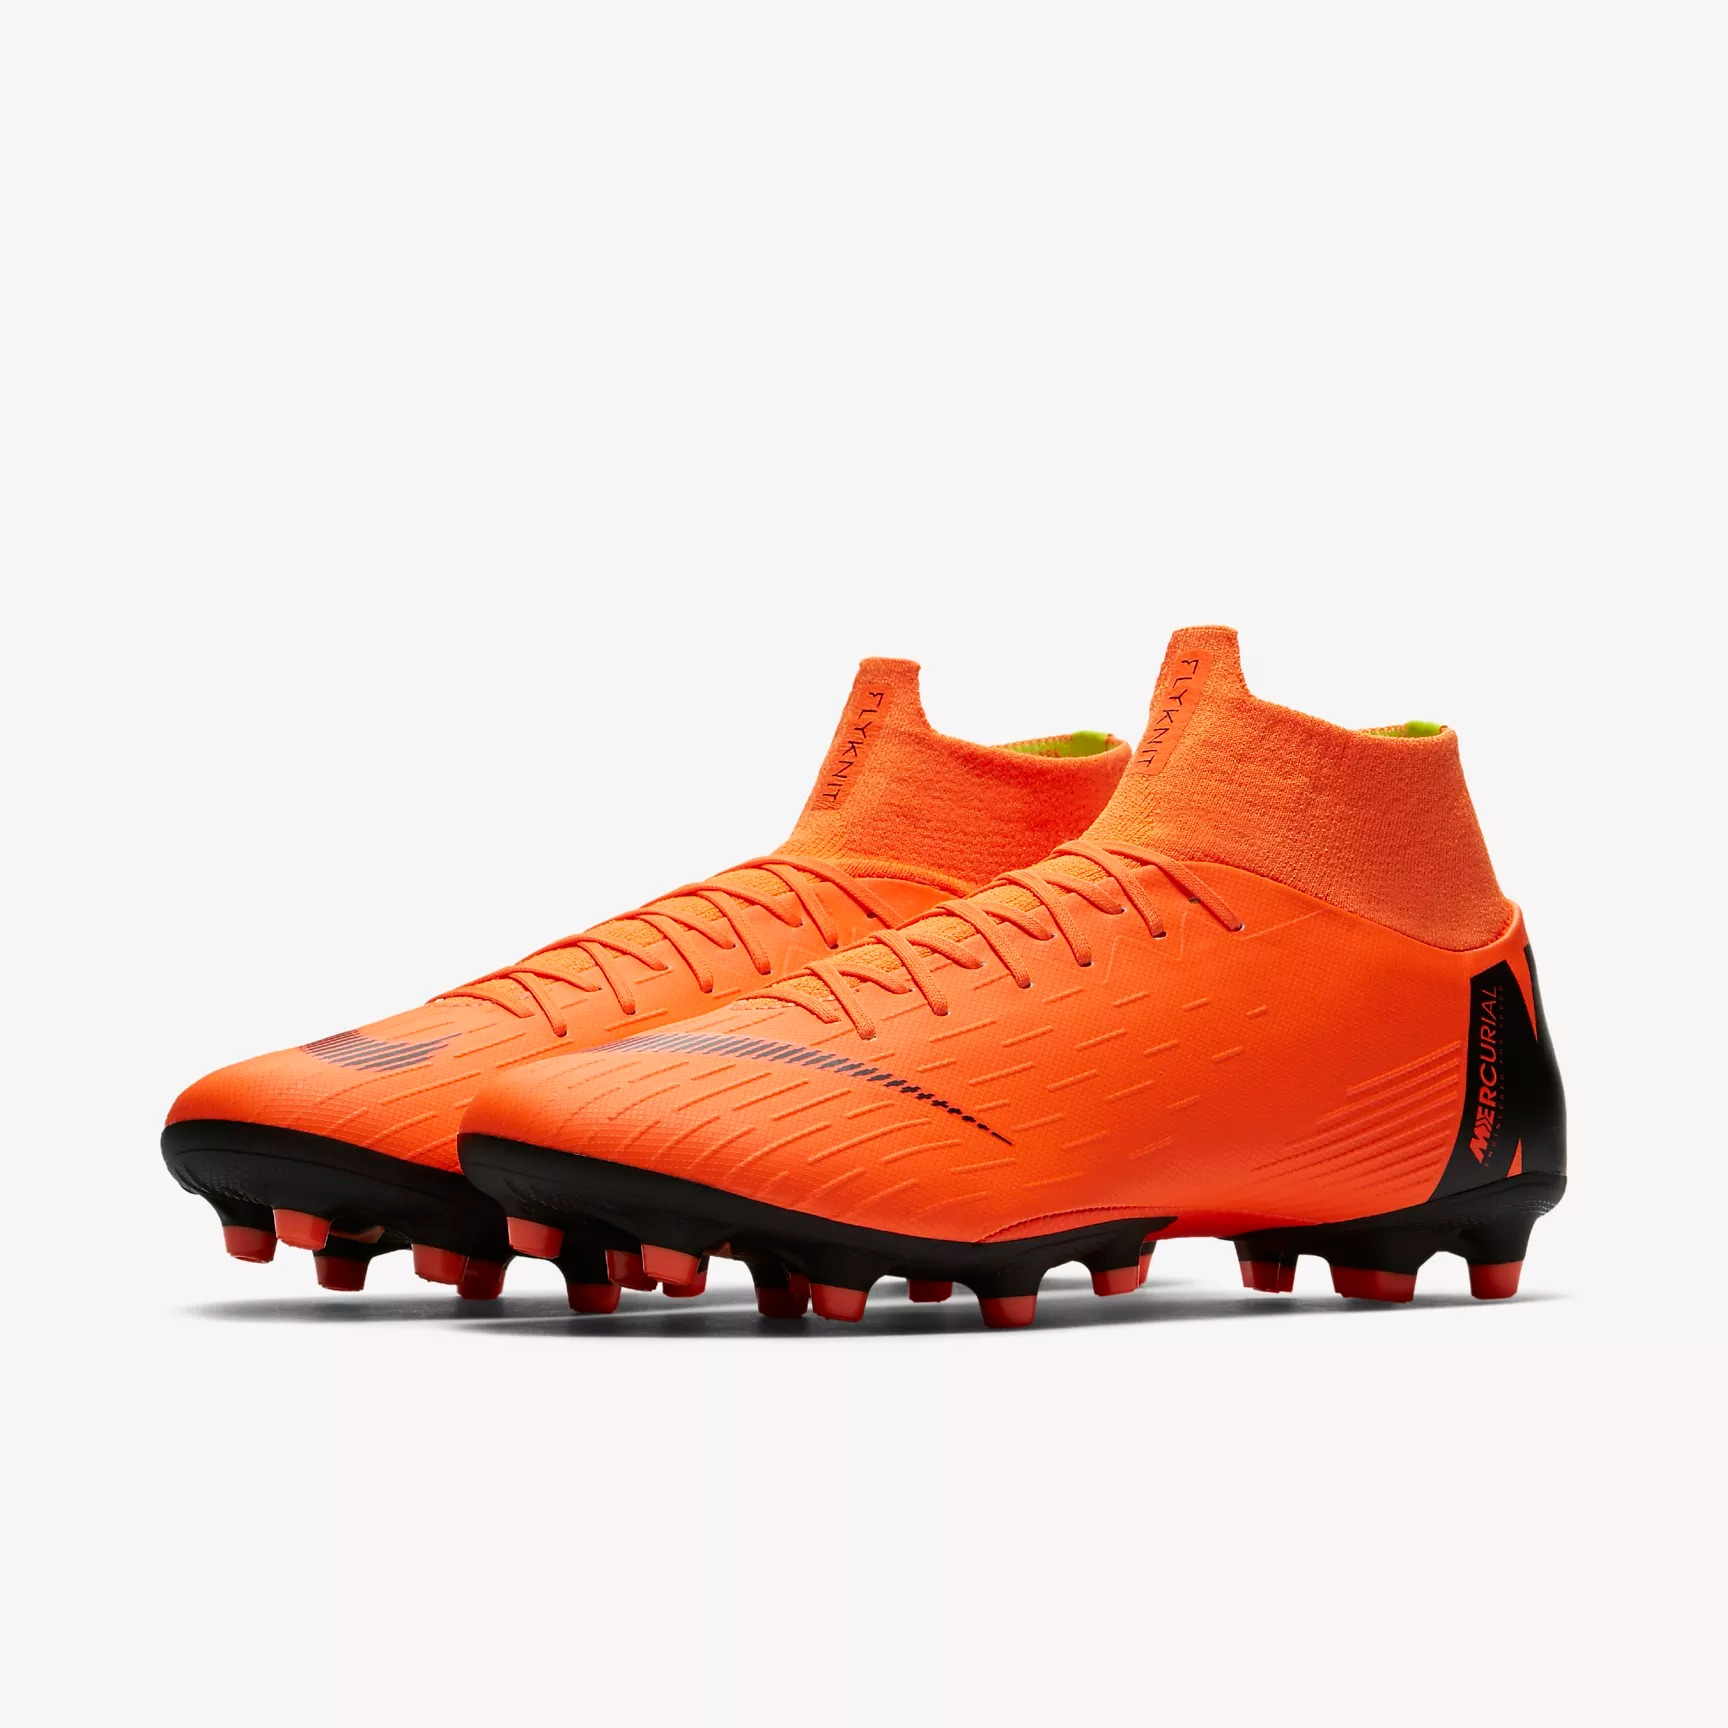 competitive price 94c6e 6eba5 Nike Mercurial Superfly 6 Pro AG-PRO Soccer Cleats - Soccer Cleats Nike  Football Boots - Superfanas.lt